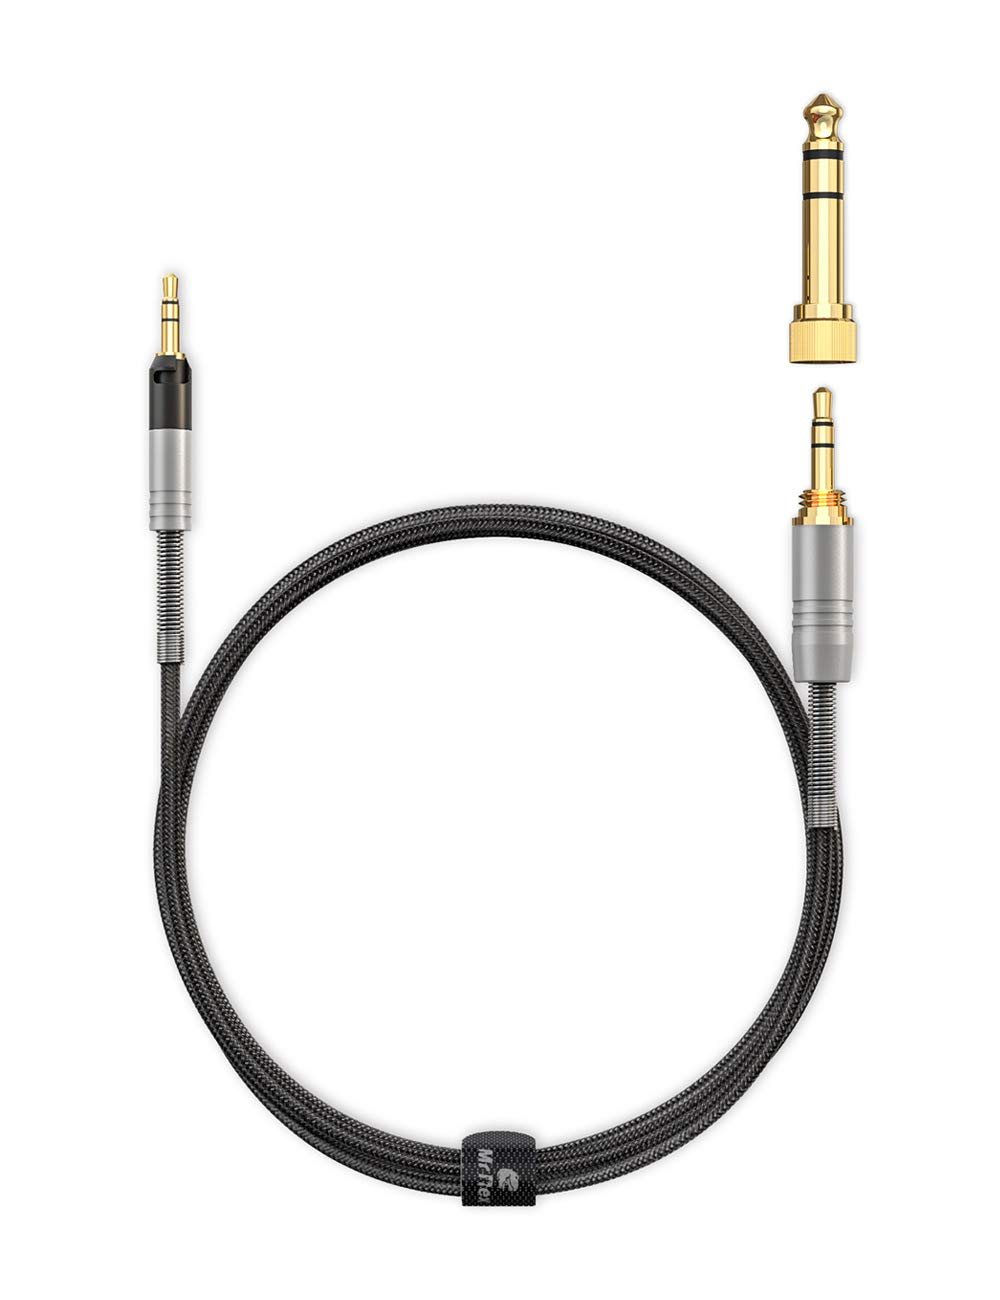 Mr Rex 5ft Upgraded 3.5mm to 2.5mm Aux Cable Braided Audio Cord with 6.35mm Adapter Compatible with Bose 700 QuietComfort QC35 QC35ii QC25 /& Audio Technica ATH-M50x ATH-M40x ATH-M70x Headphones